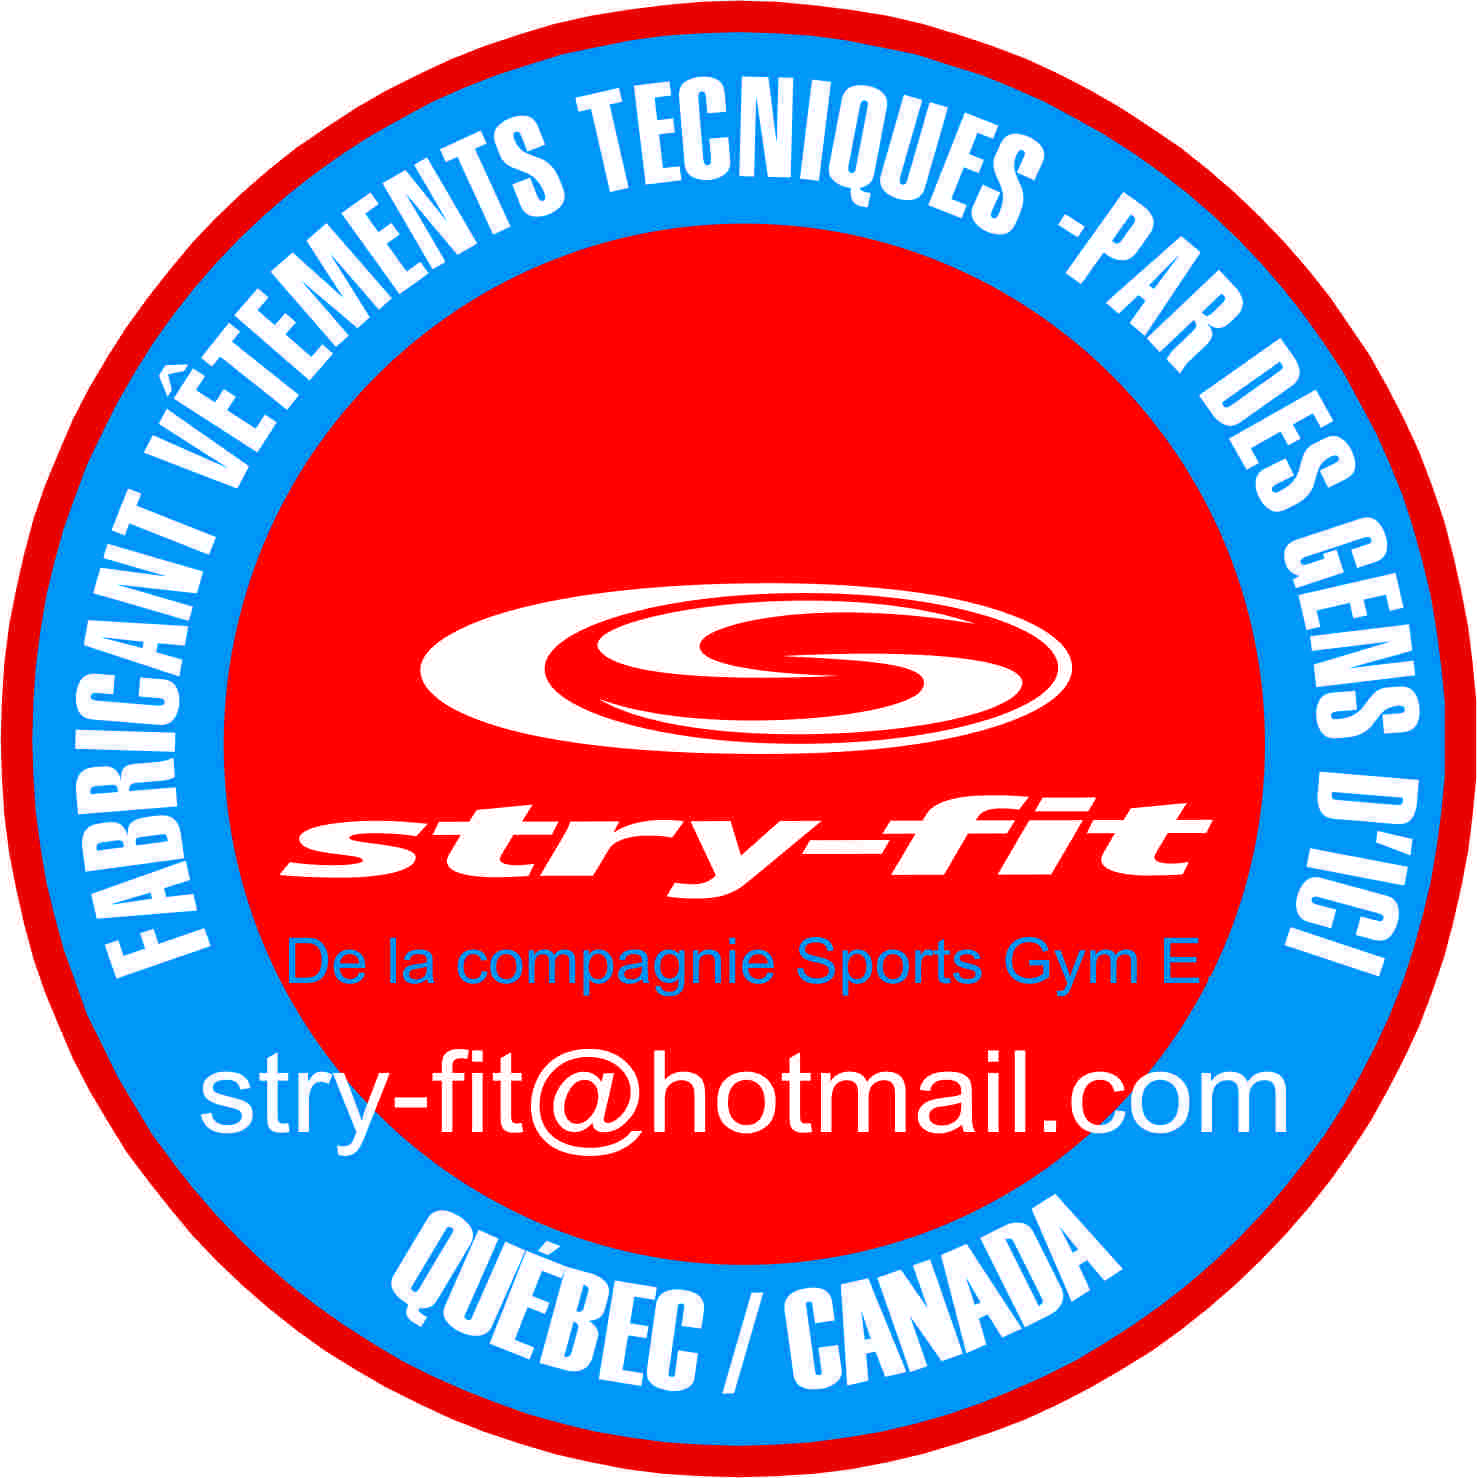 LOGO STRY-FIT ROND AVEC E-MAILS.jpg